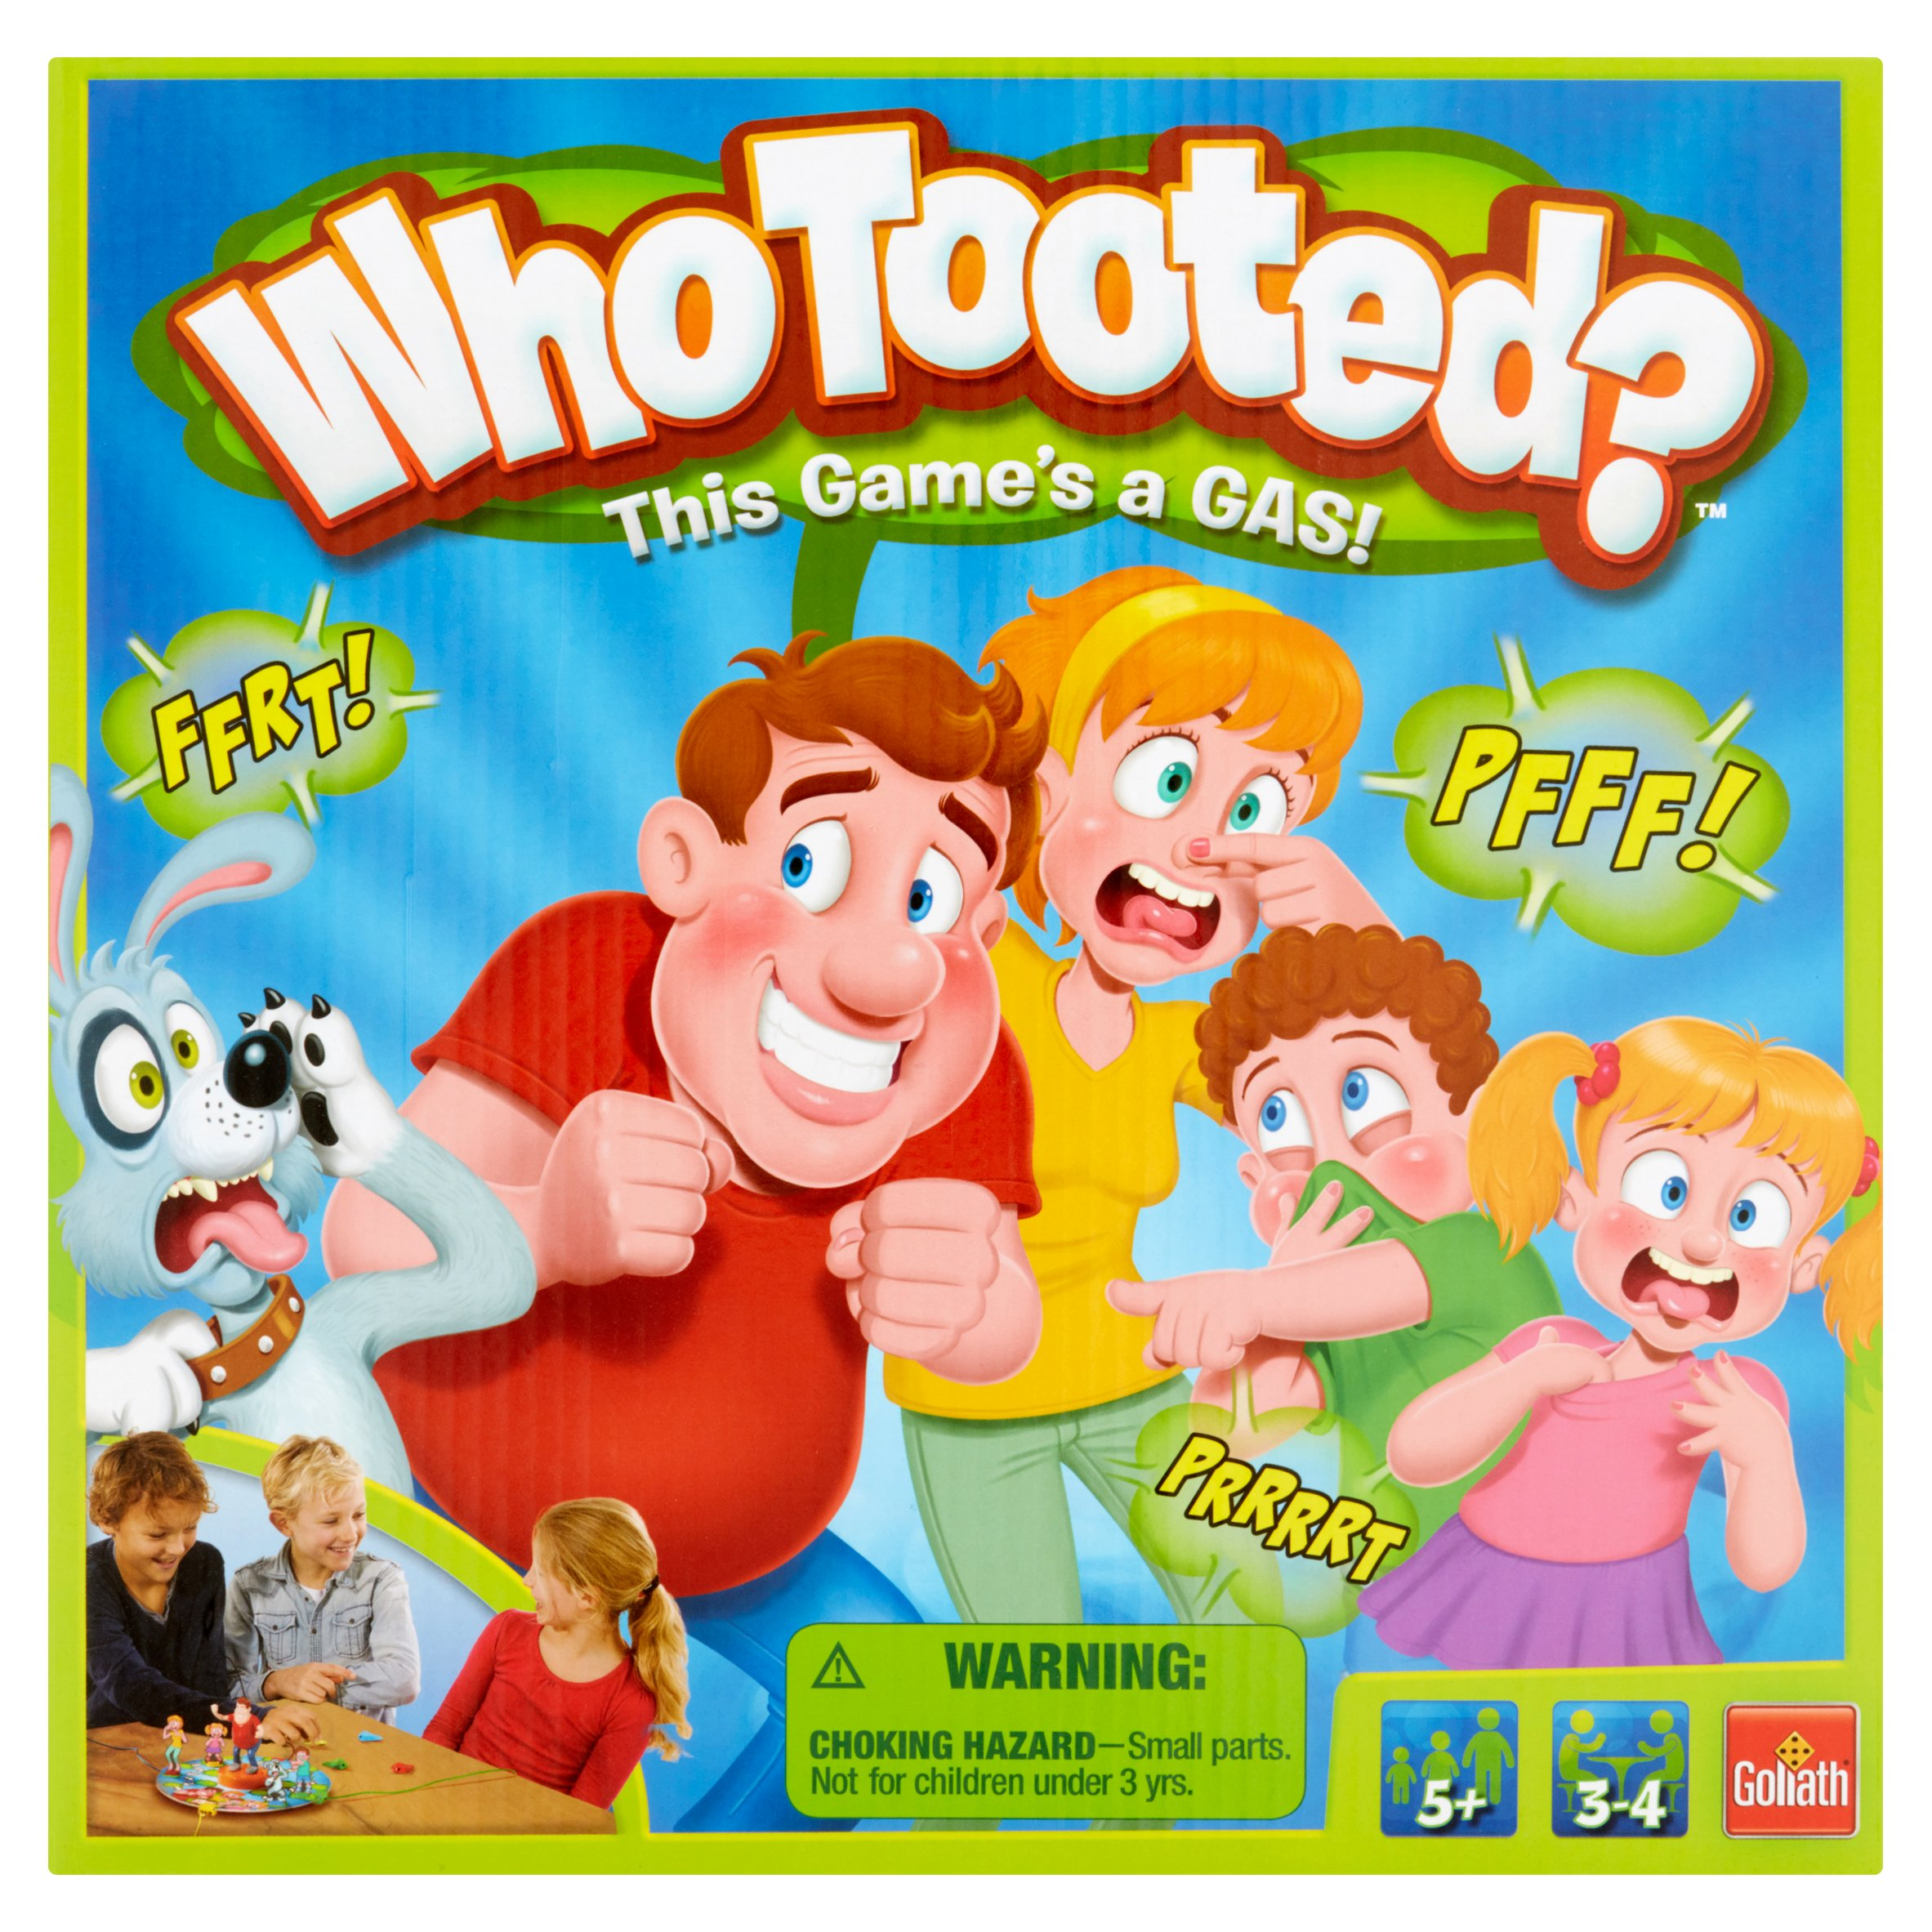 Goliath Whotooted? Board Game 5+ by Goliath Games, LLC